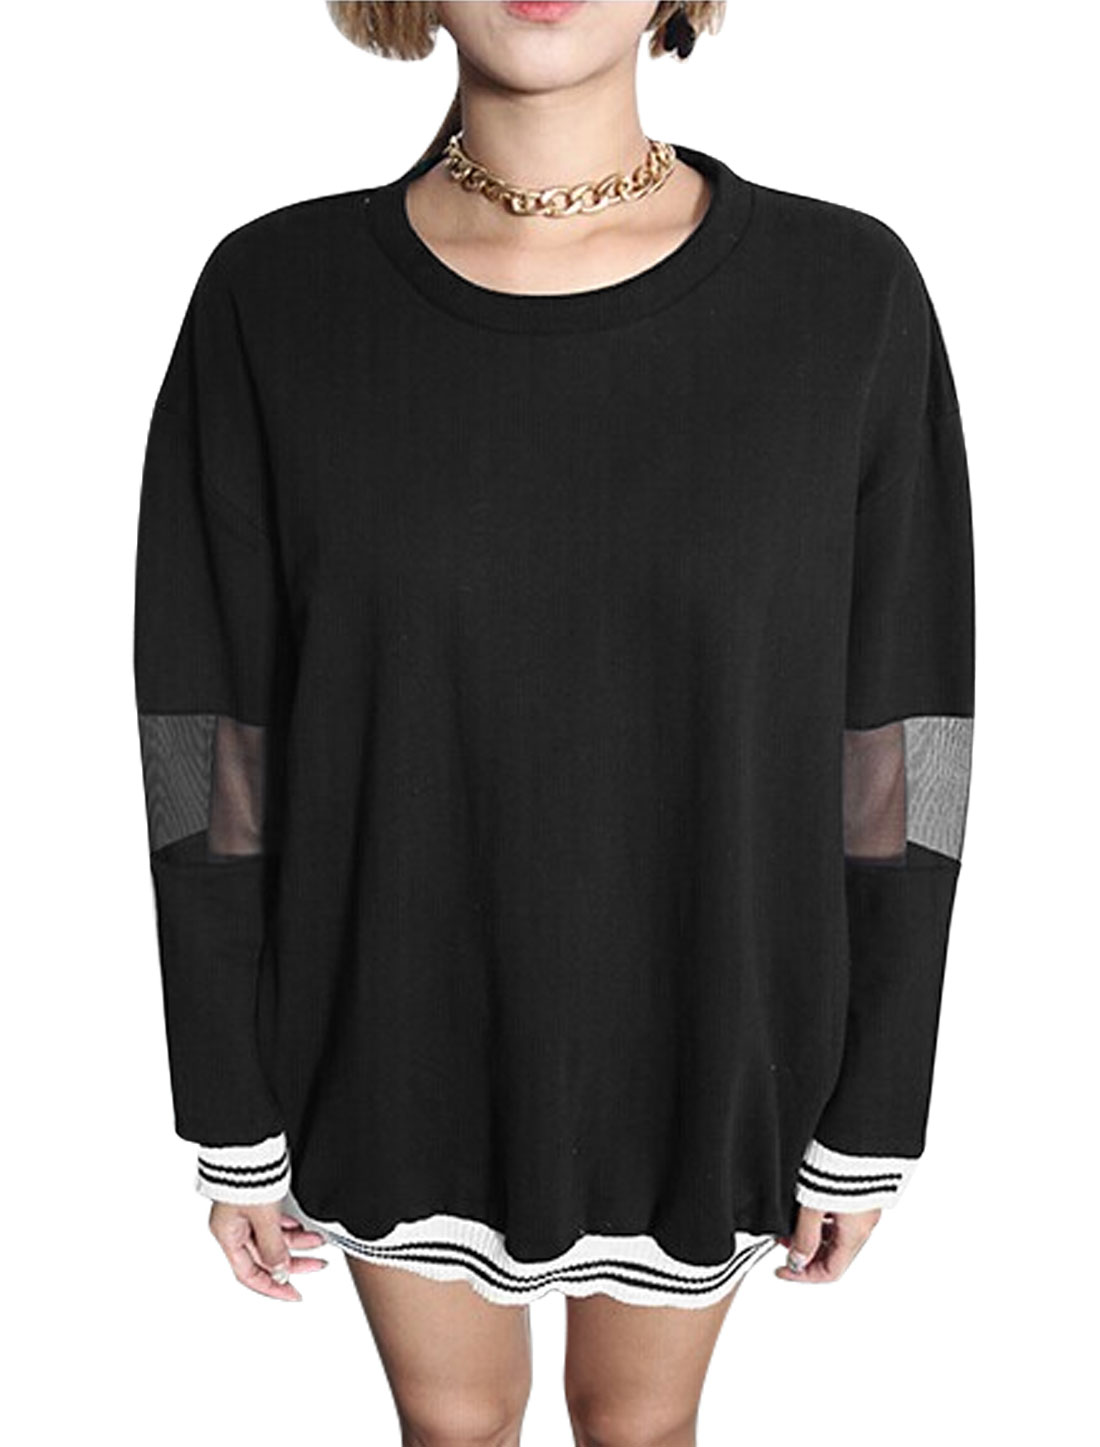 Women Round Neck Batwing Sleeves Striped Trim Pullover Tunic Blouse Black S